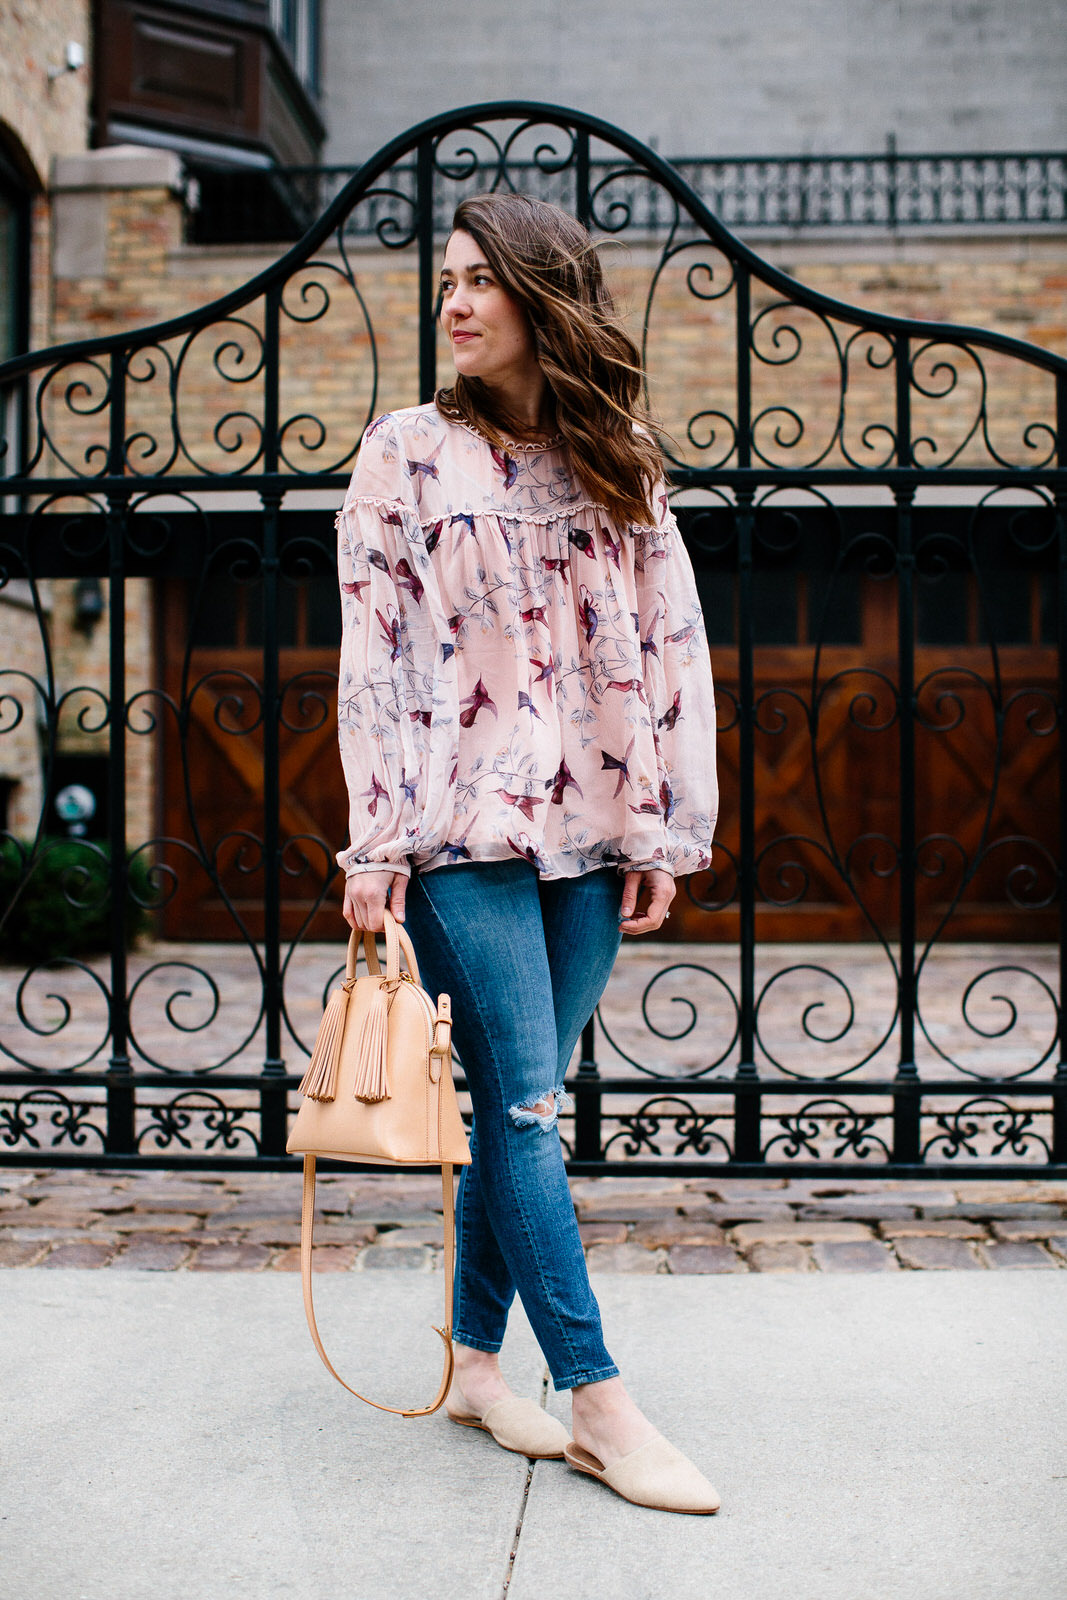 Liz Adams of Sequins & Stripes styles an easy spring blouse to transition to warmer weather.